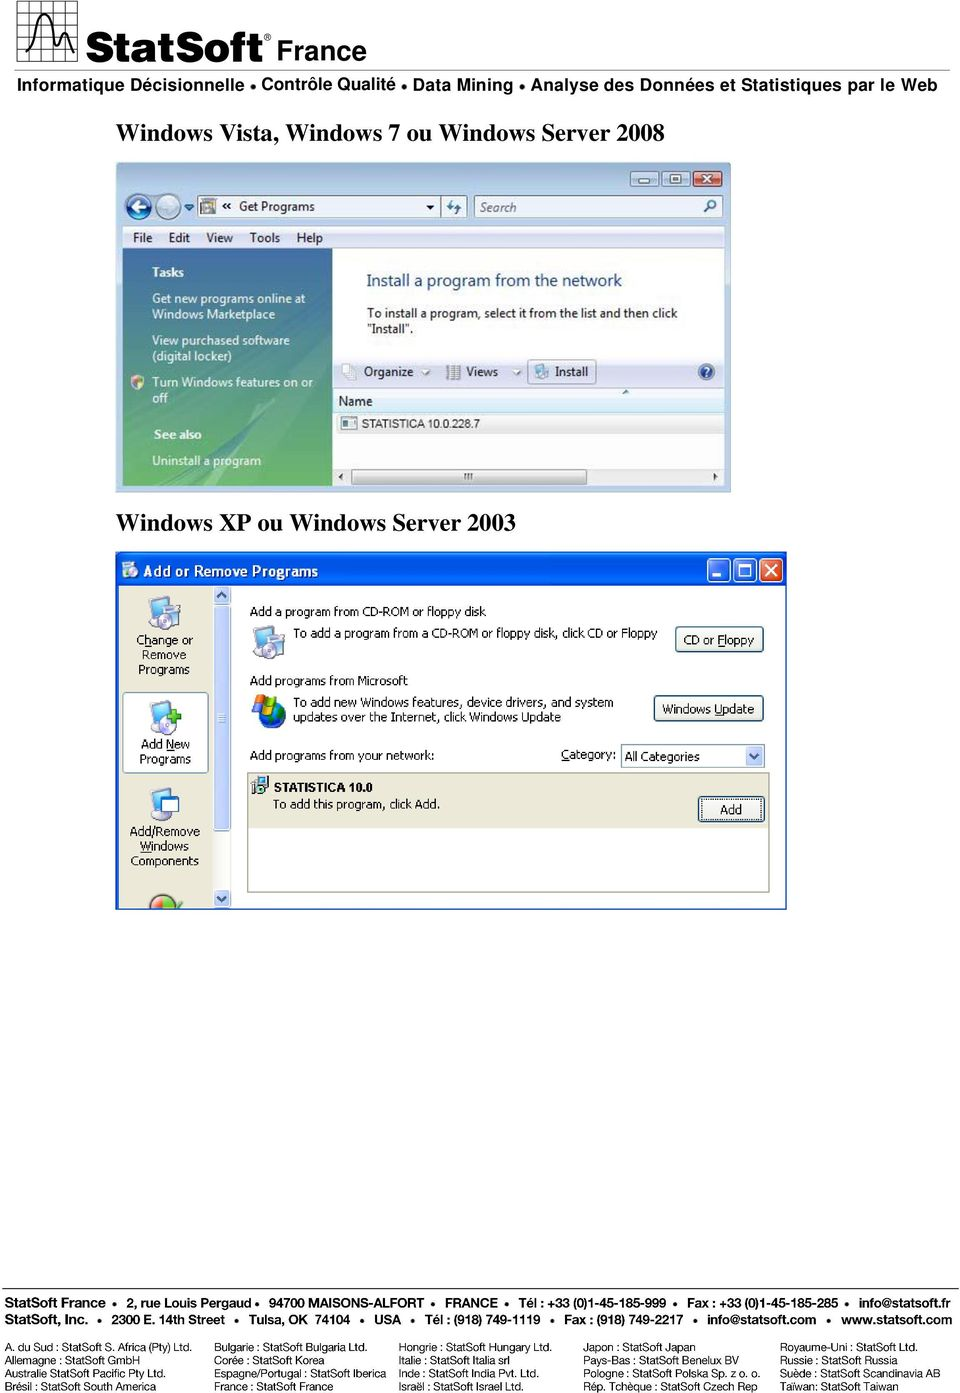 Server 2008 Windows